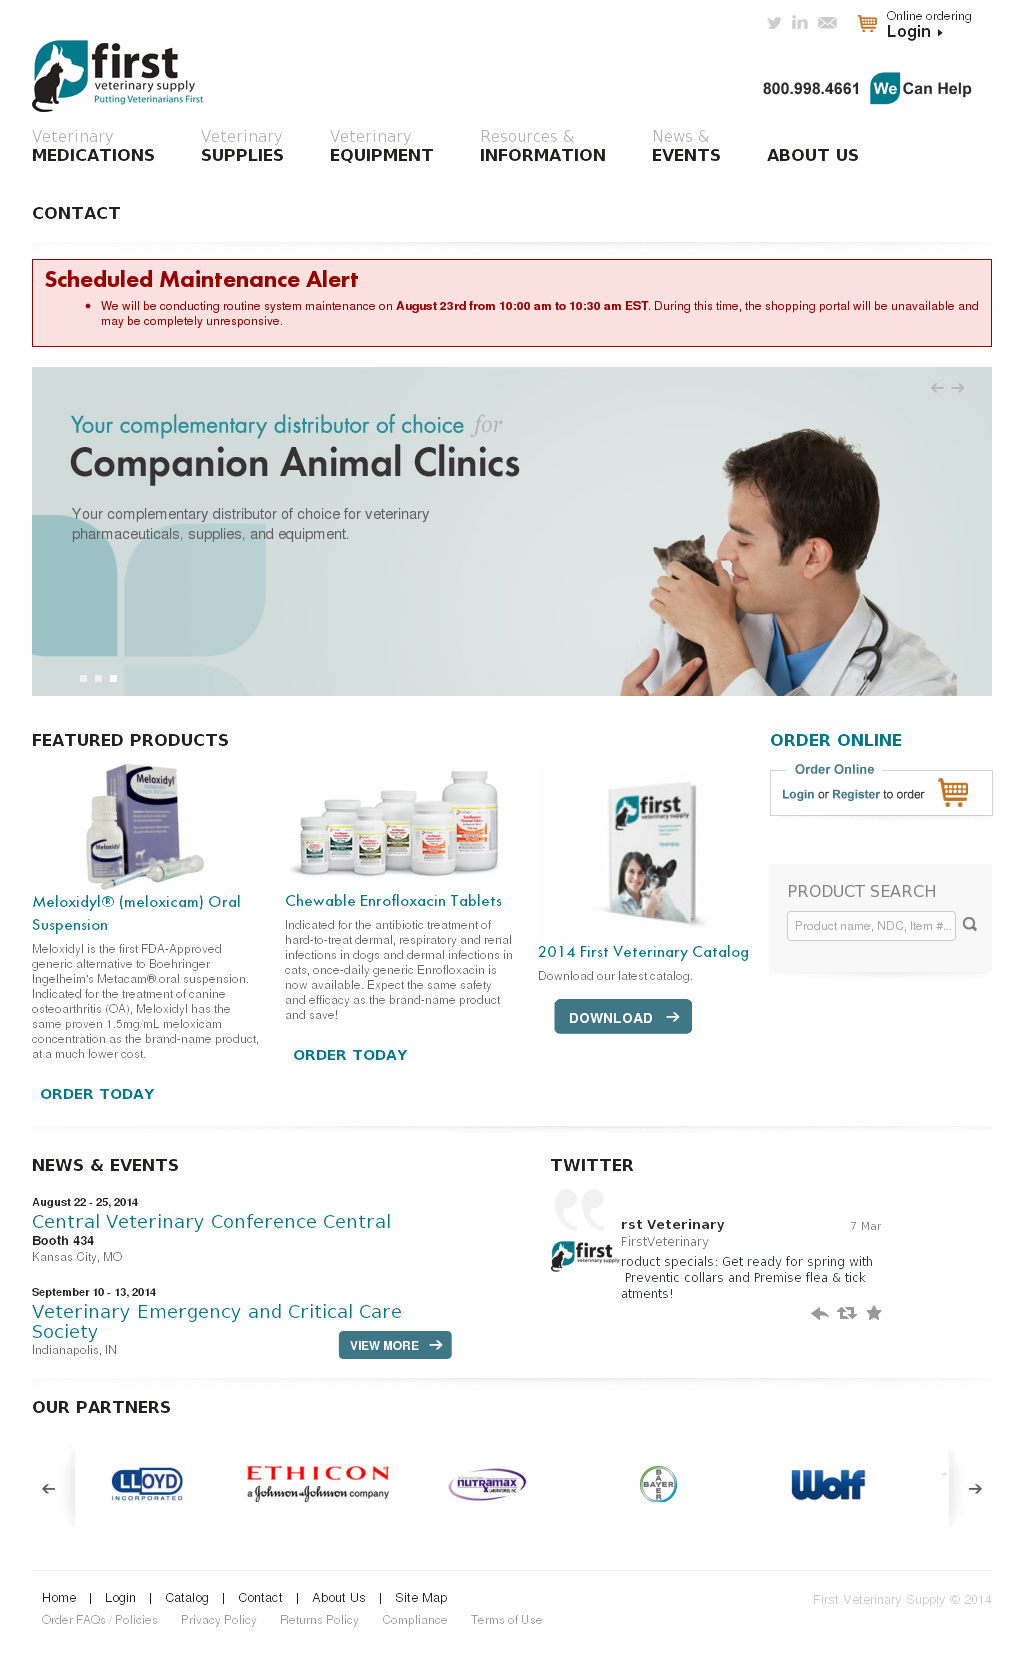 First Veterinary Supply Competitors, Revenue and Employees - Owler